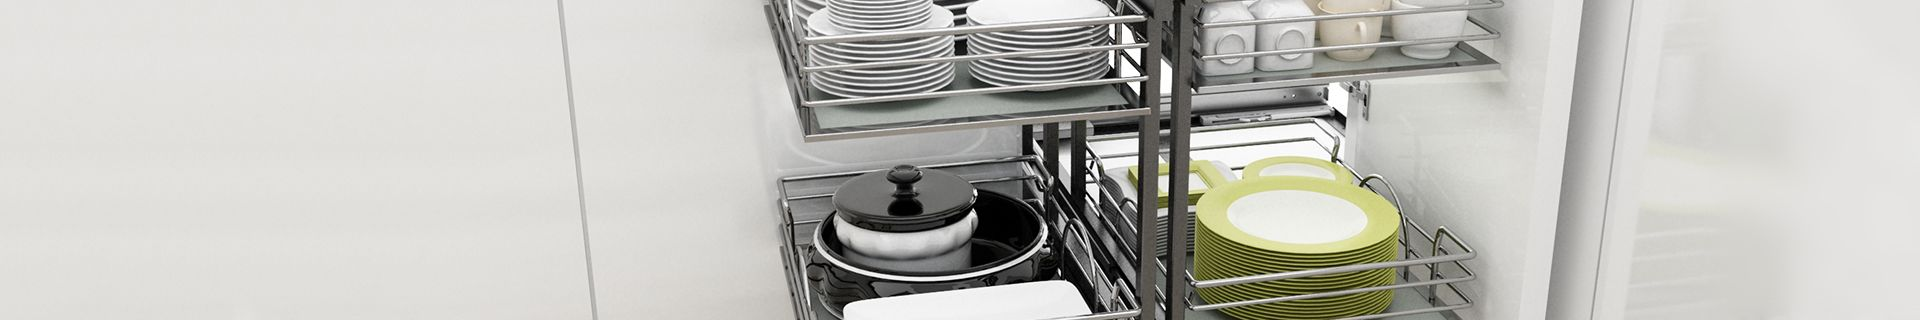 Crockery and kitchenware neatly stacked in kitchen cupboards using Rev-A-Shelf cupboard organisers